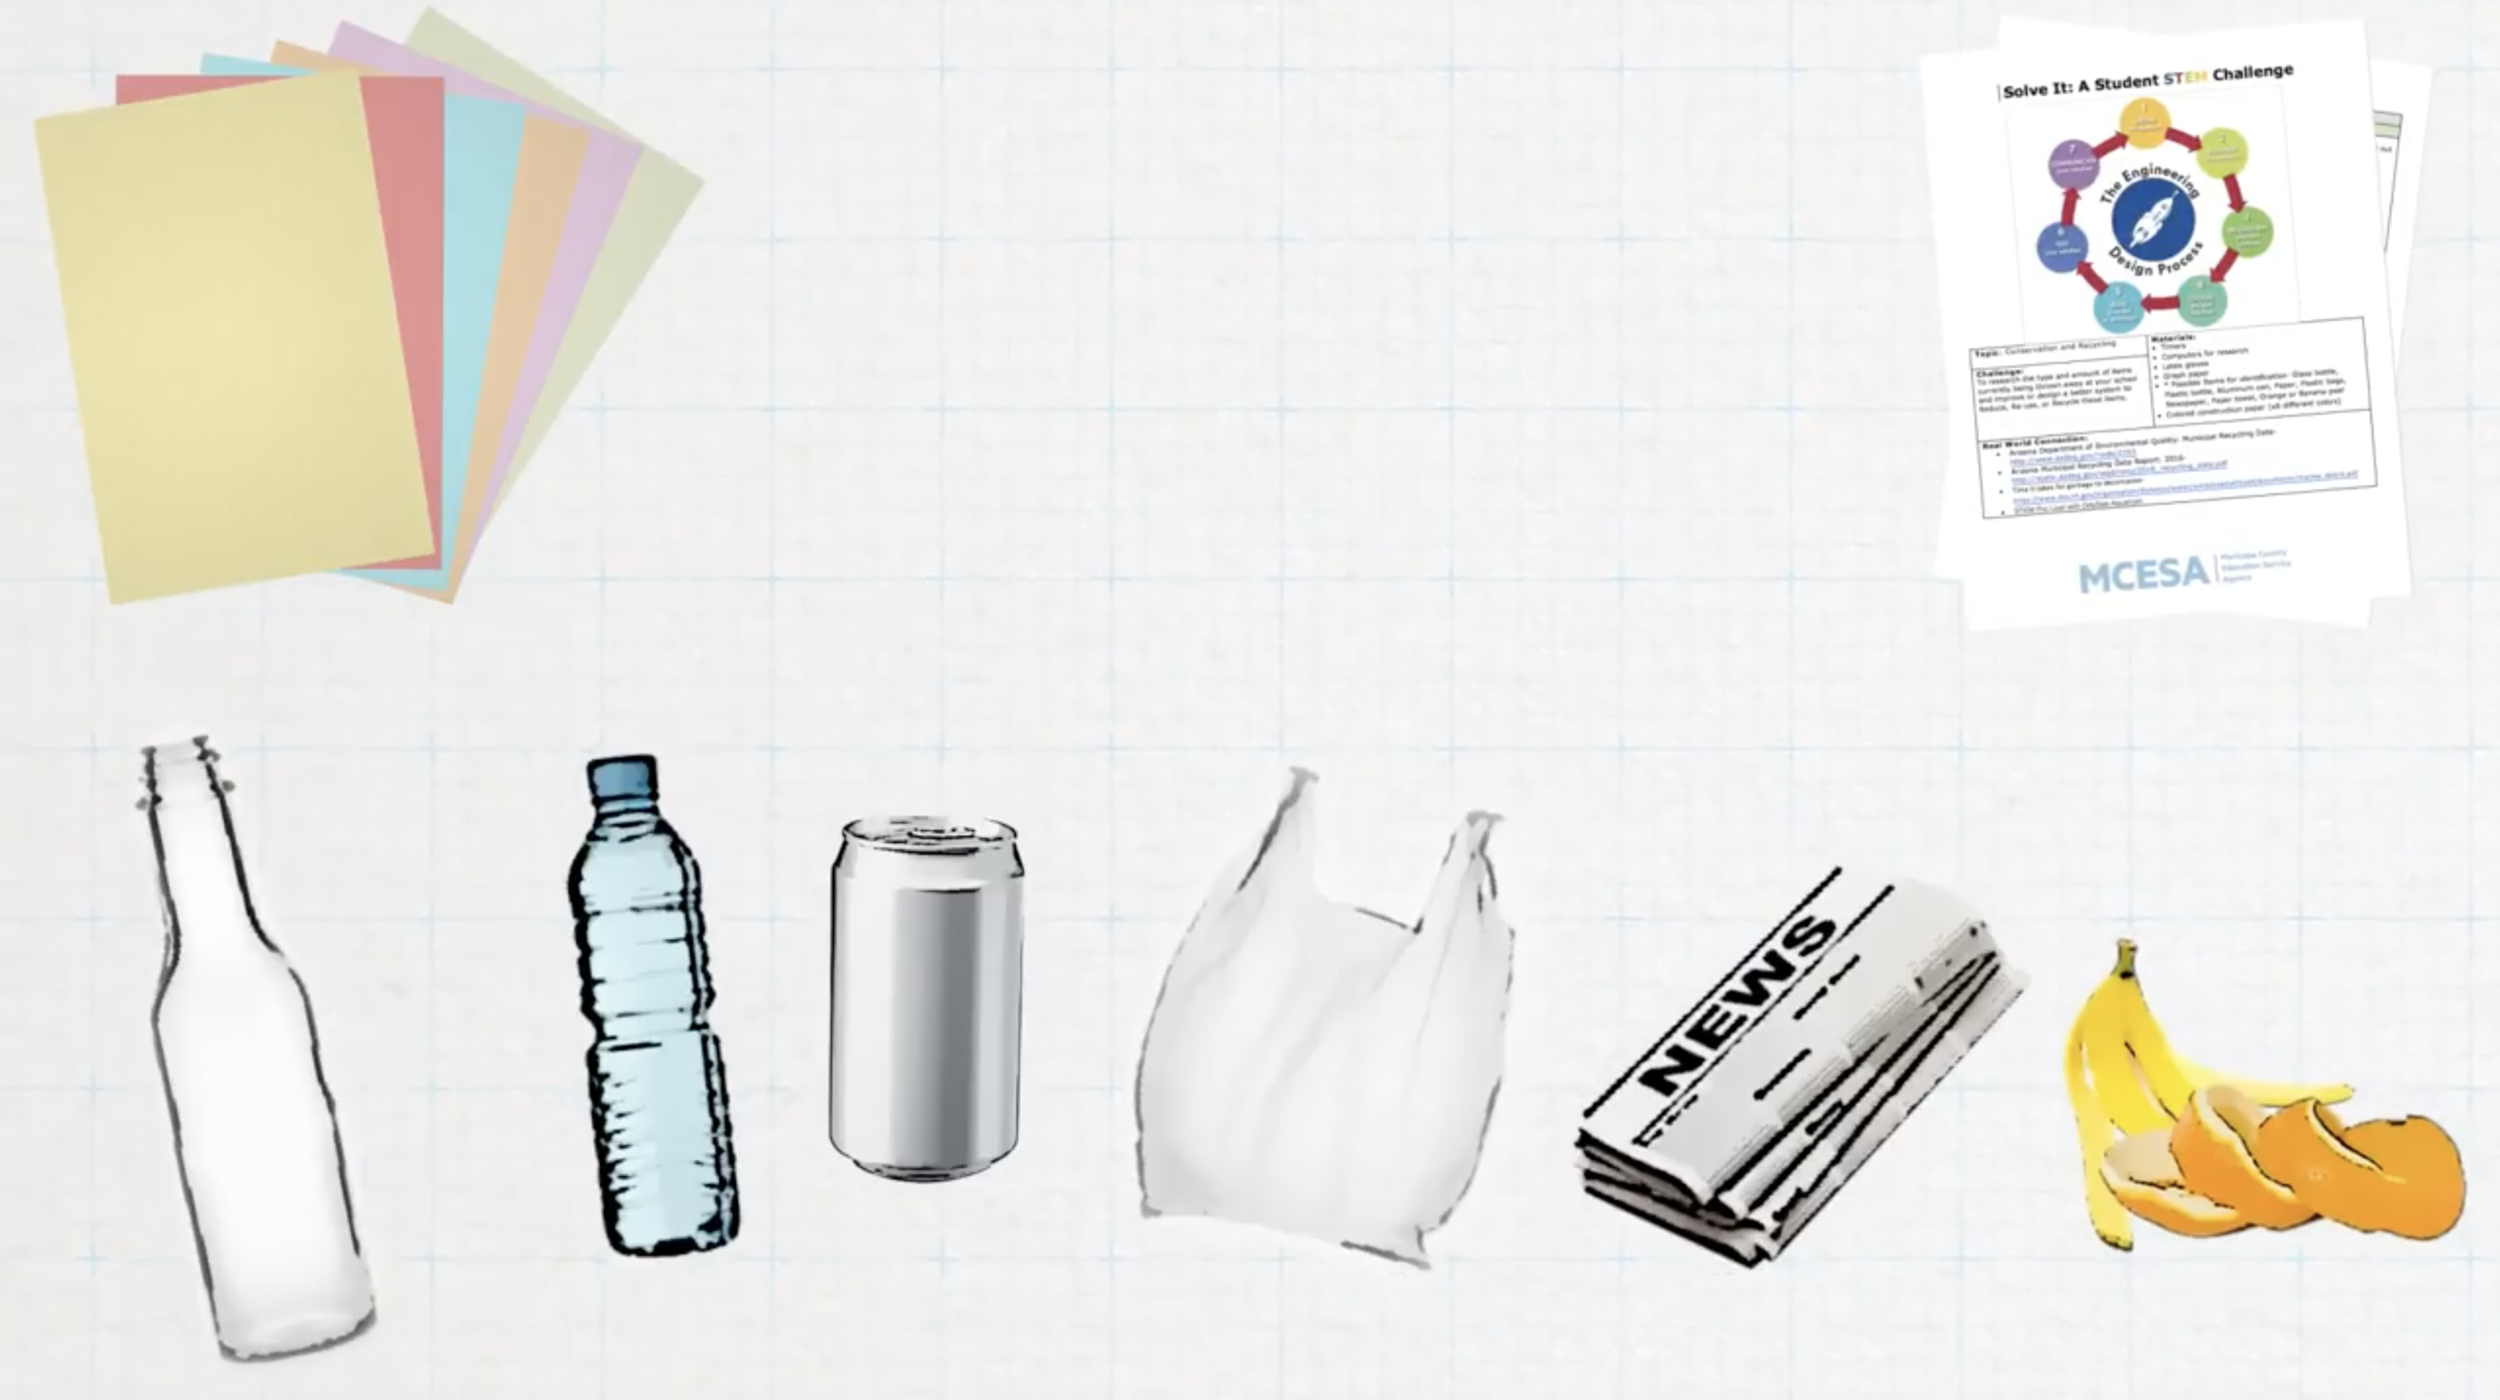 Solve It: Recycling - Your challenge: To research the type and amount of items currently being thrown away at your school and improve or design a better system to reduce, re-use, or recycle those items.